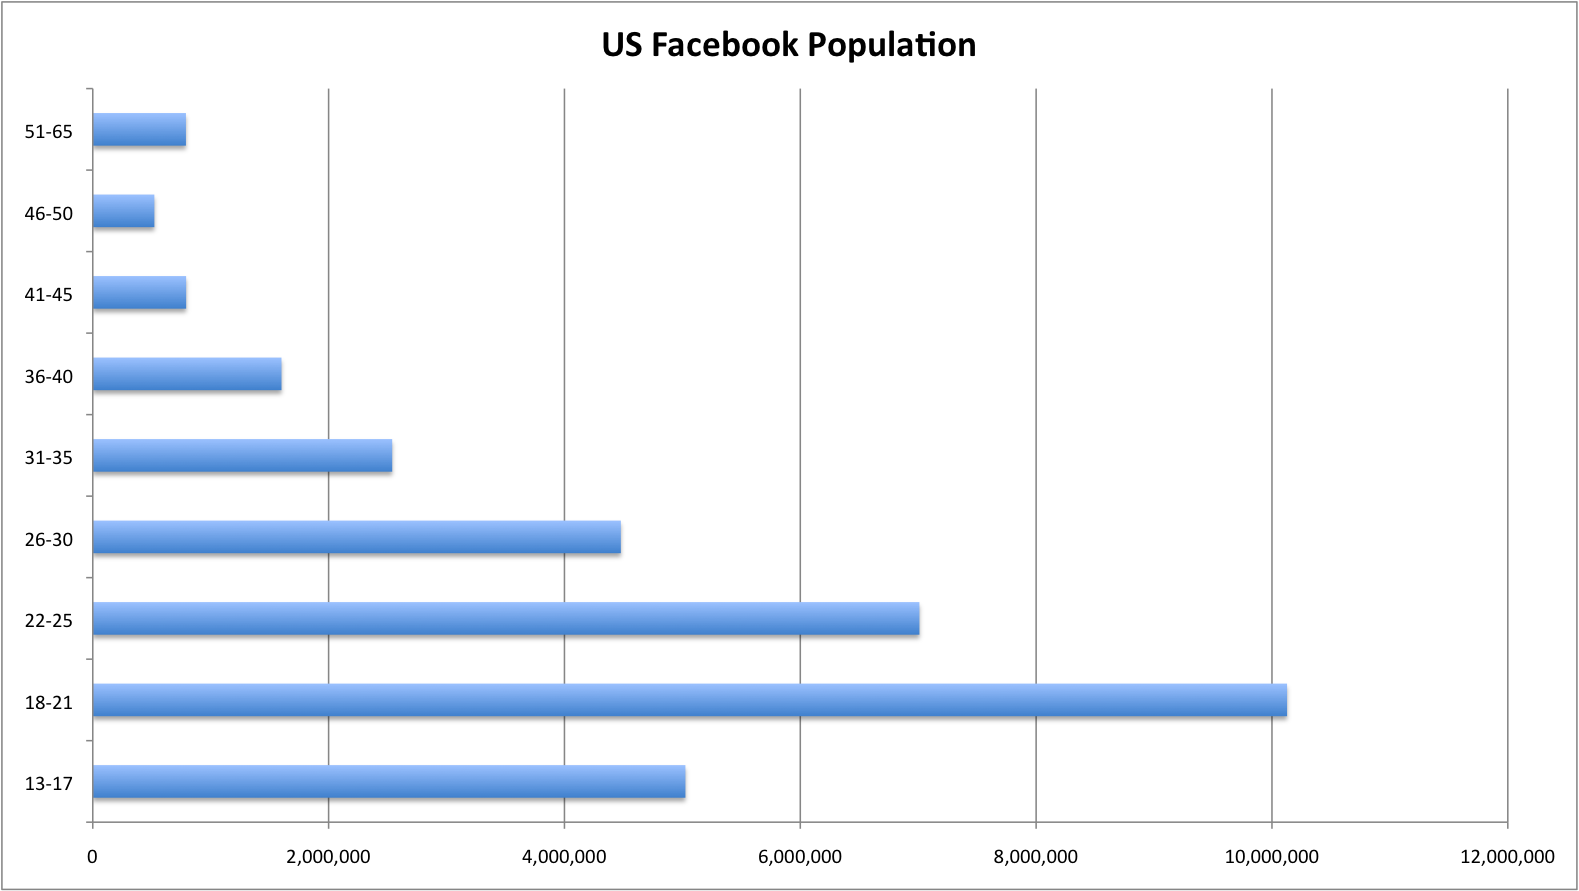 USfacebookpopulation.png